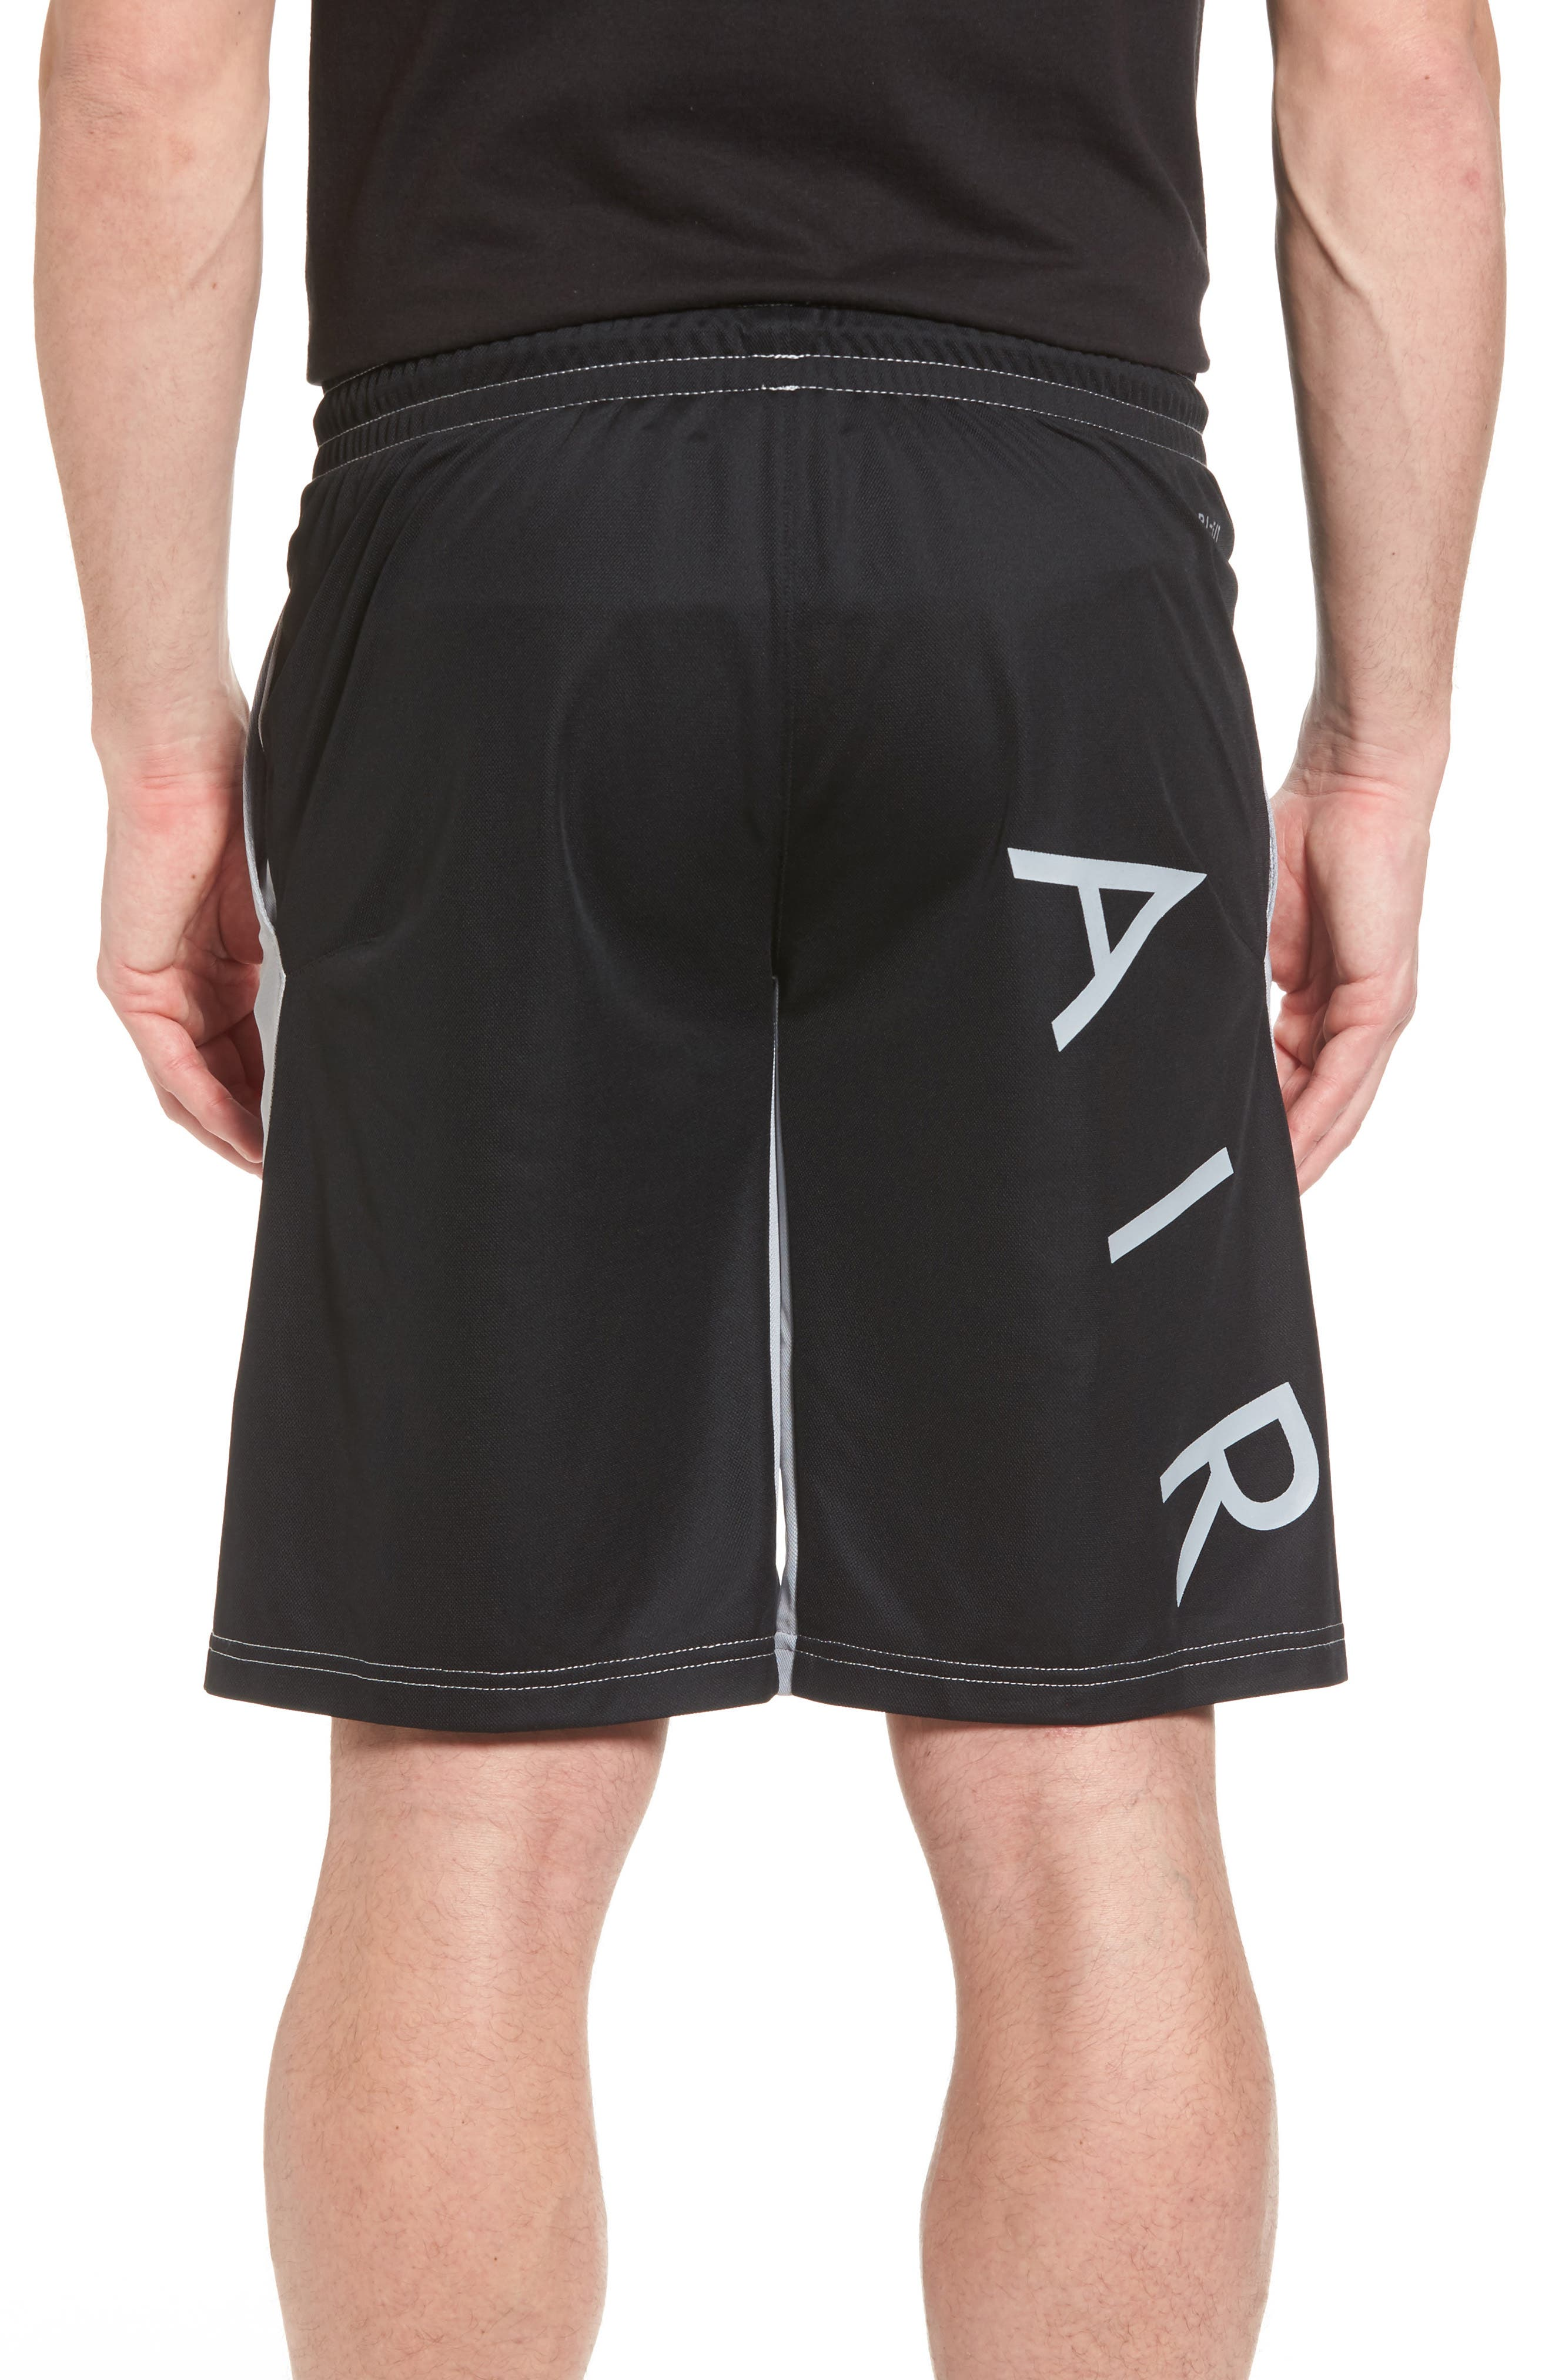 Flight Basketball Shorts,                             Alternate thumbnail 2, color,                             Wolf Grey/ Black/ Black